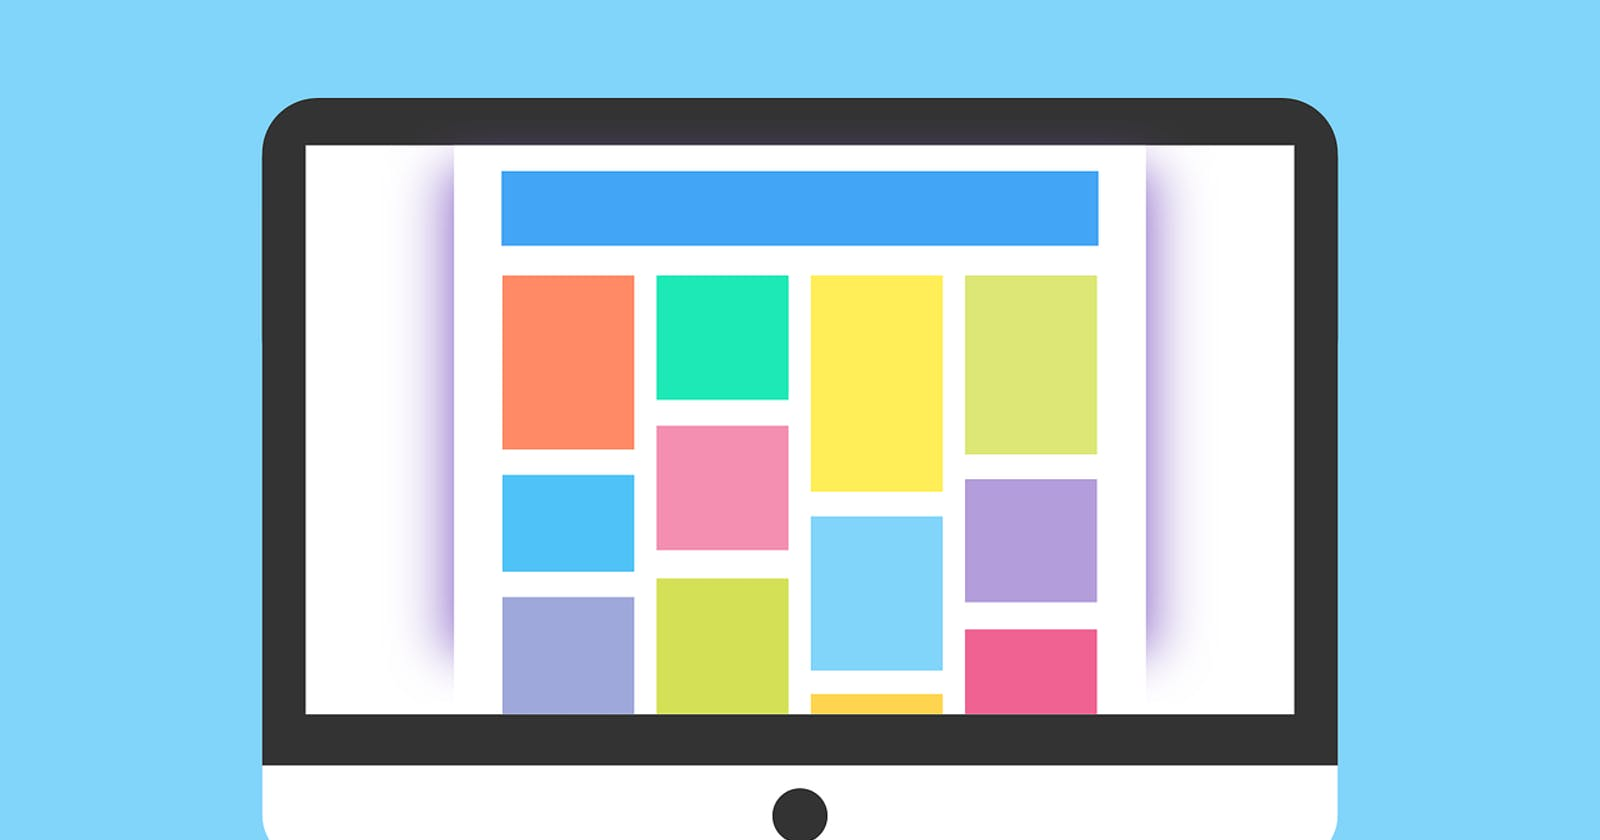 What CSS grid can do that flex cannot?